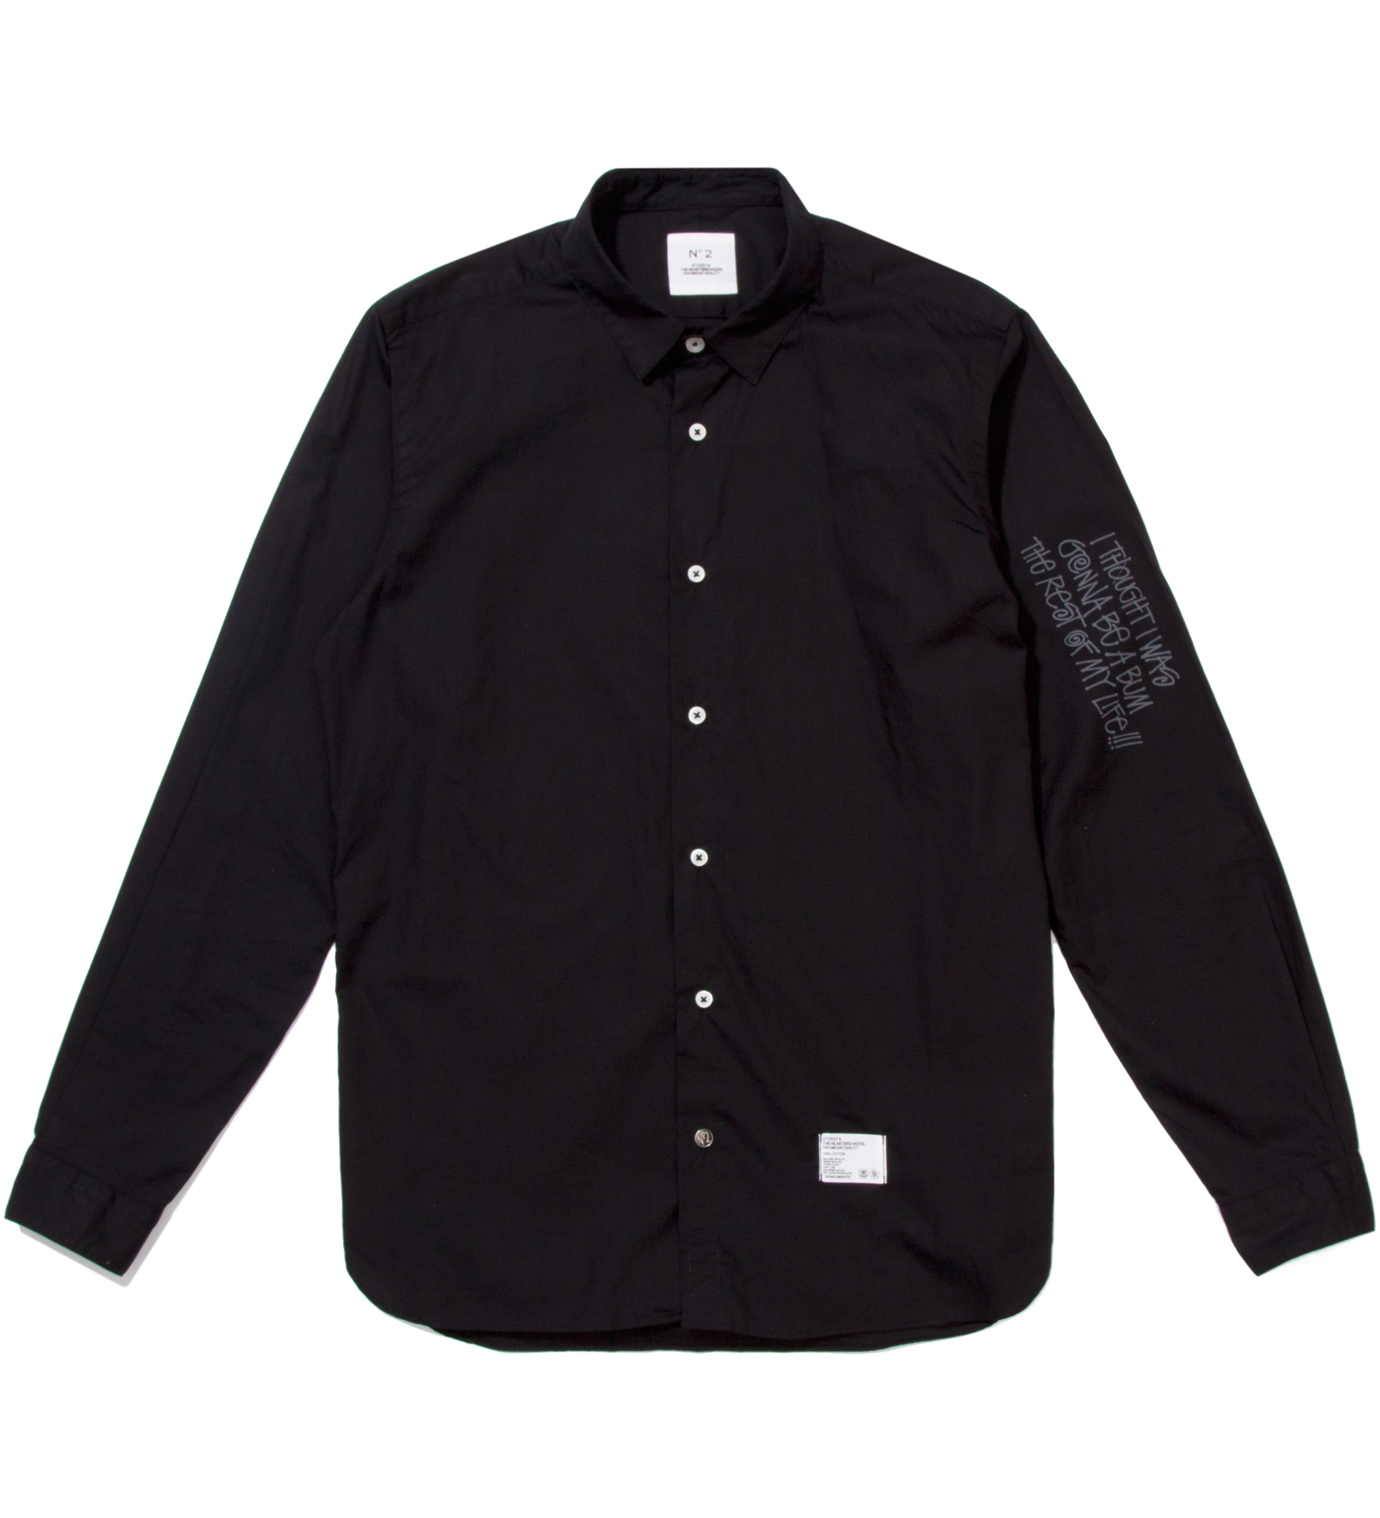 "BEDWIN & THE HEARTBREAKERS Stussy x The Heartbreaker Black Graphic ""Jean- Michel"" Shirt"